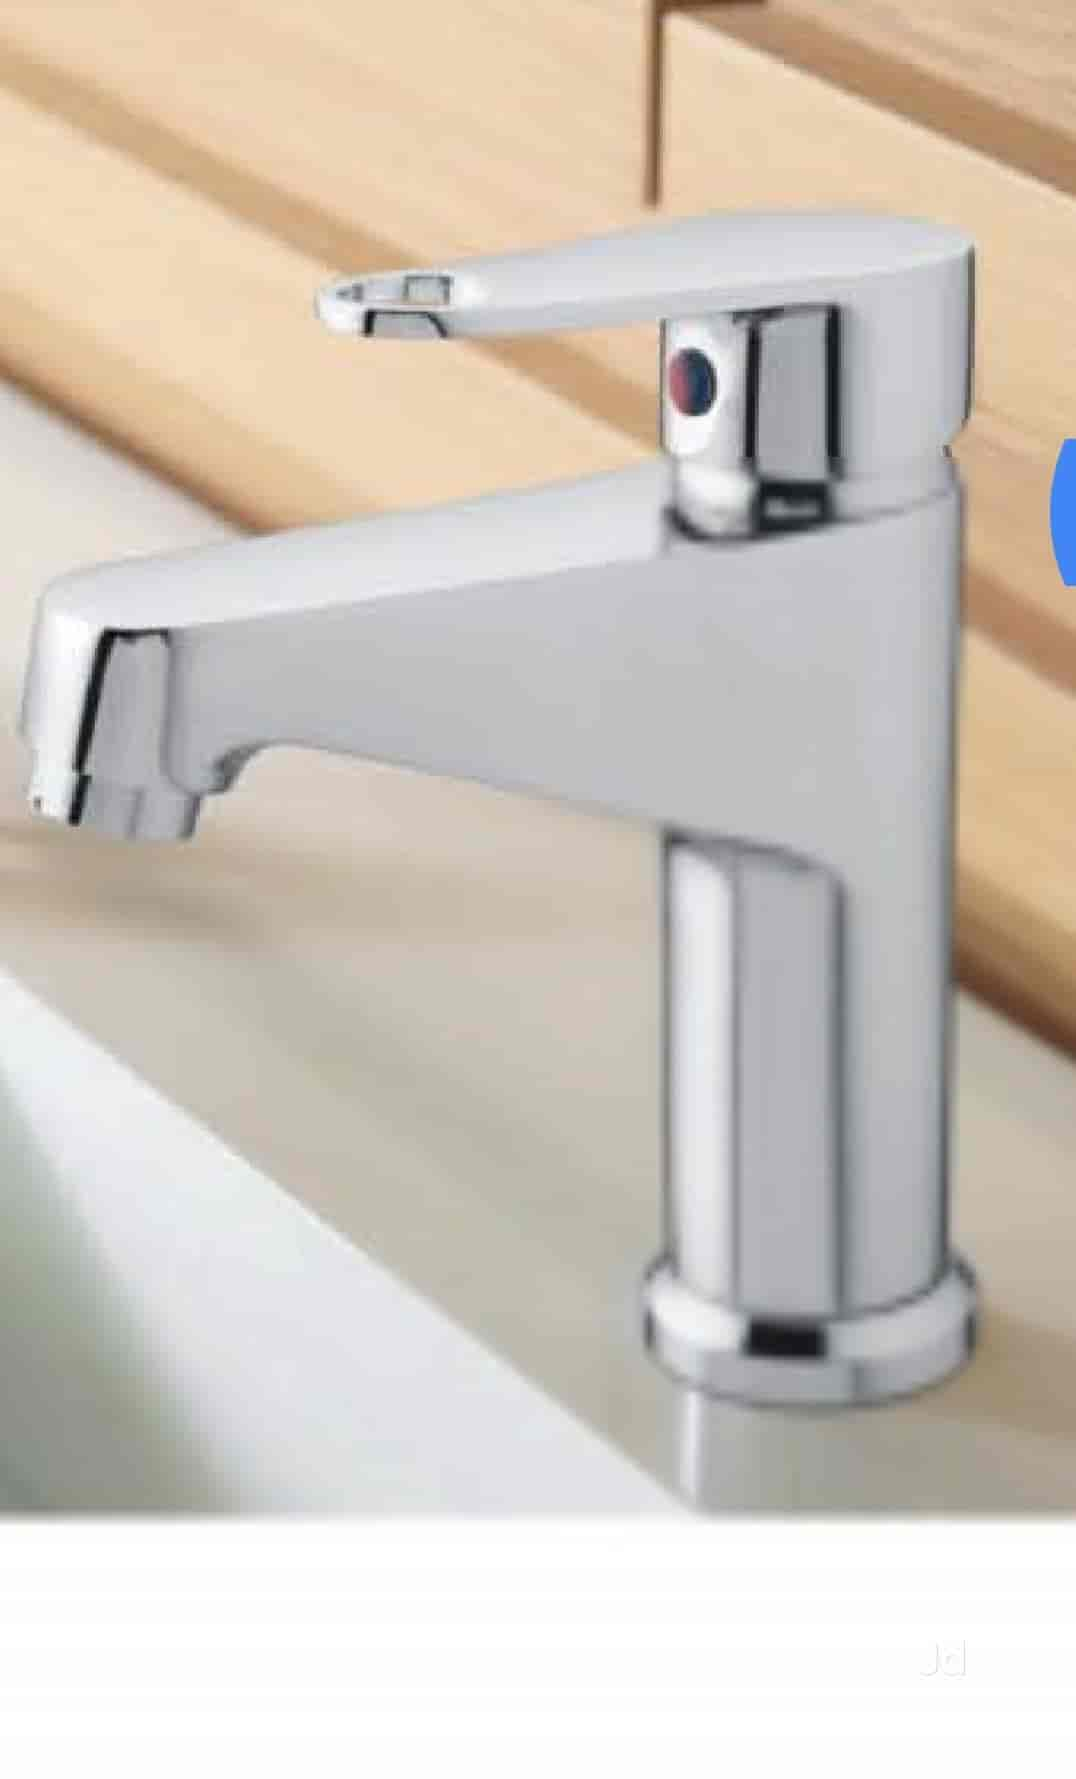 Coats Bath Fittings And Accessories Jhilmil Industrial Area